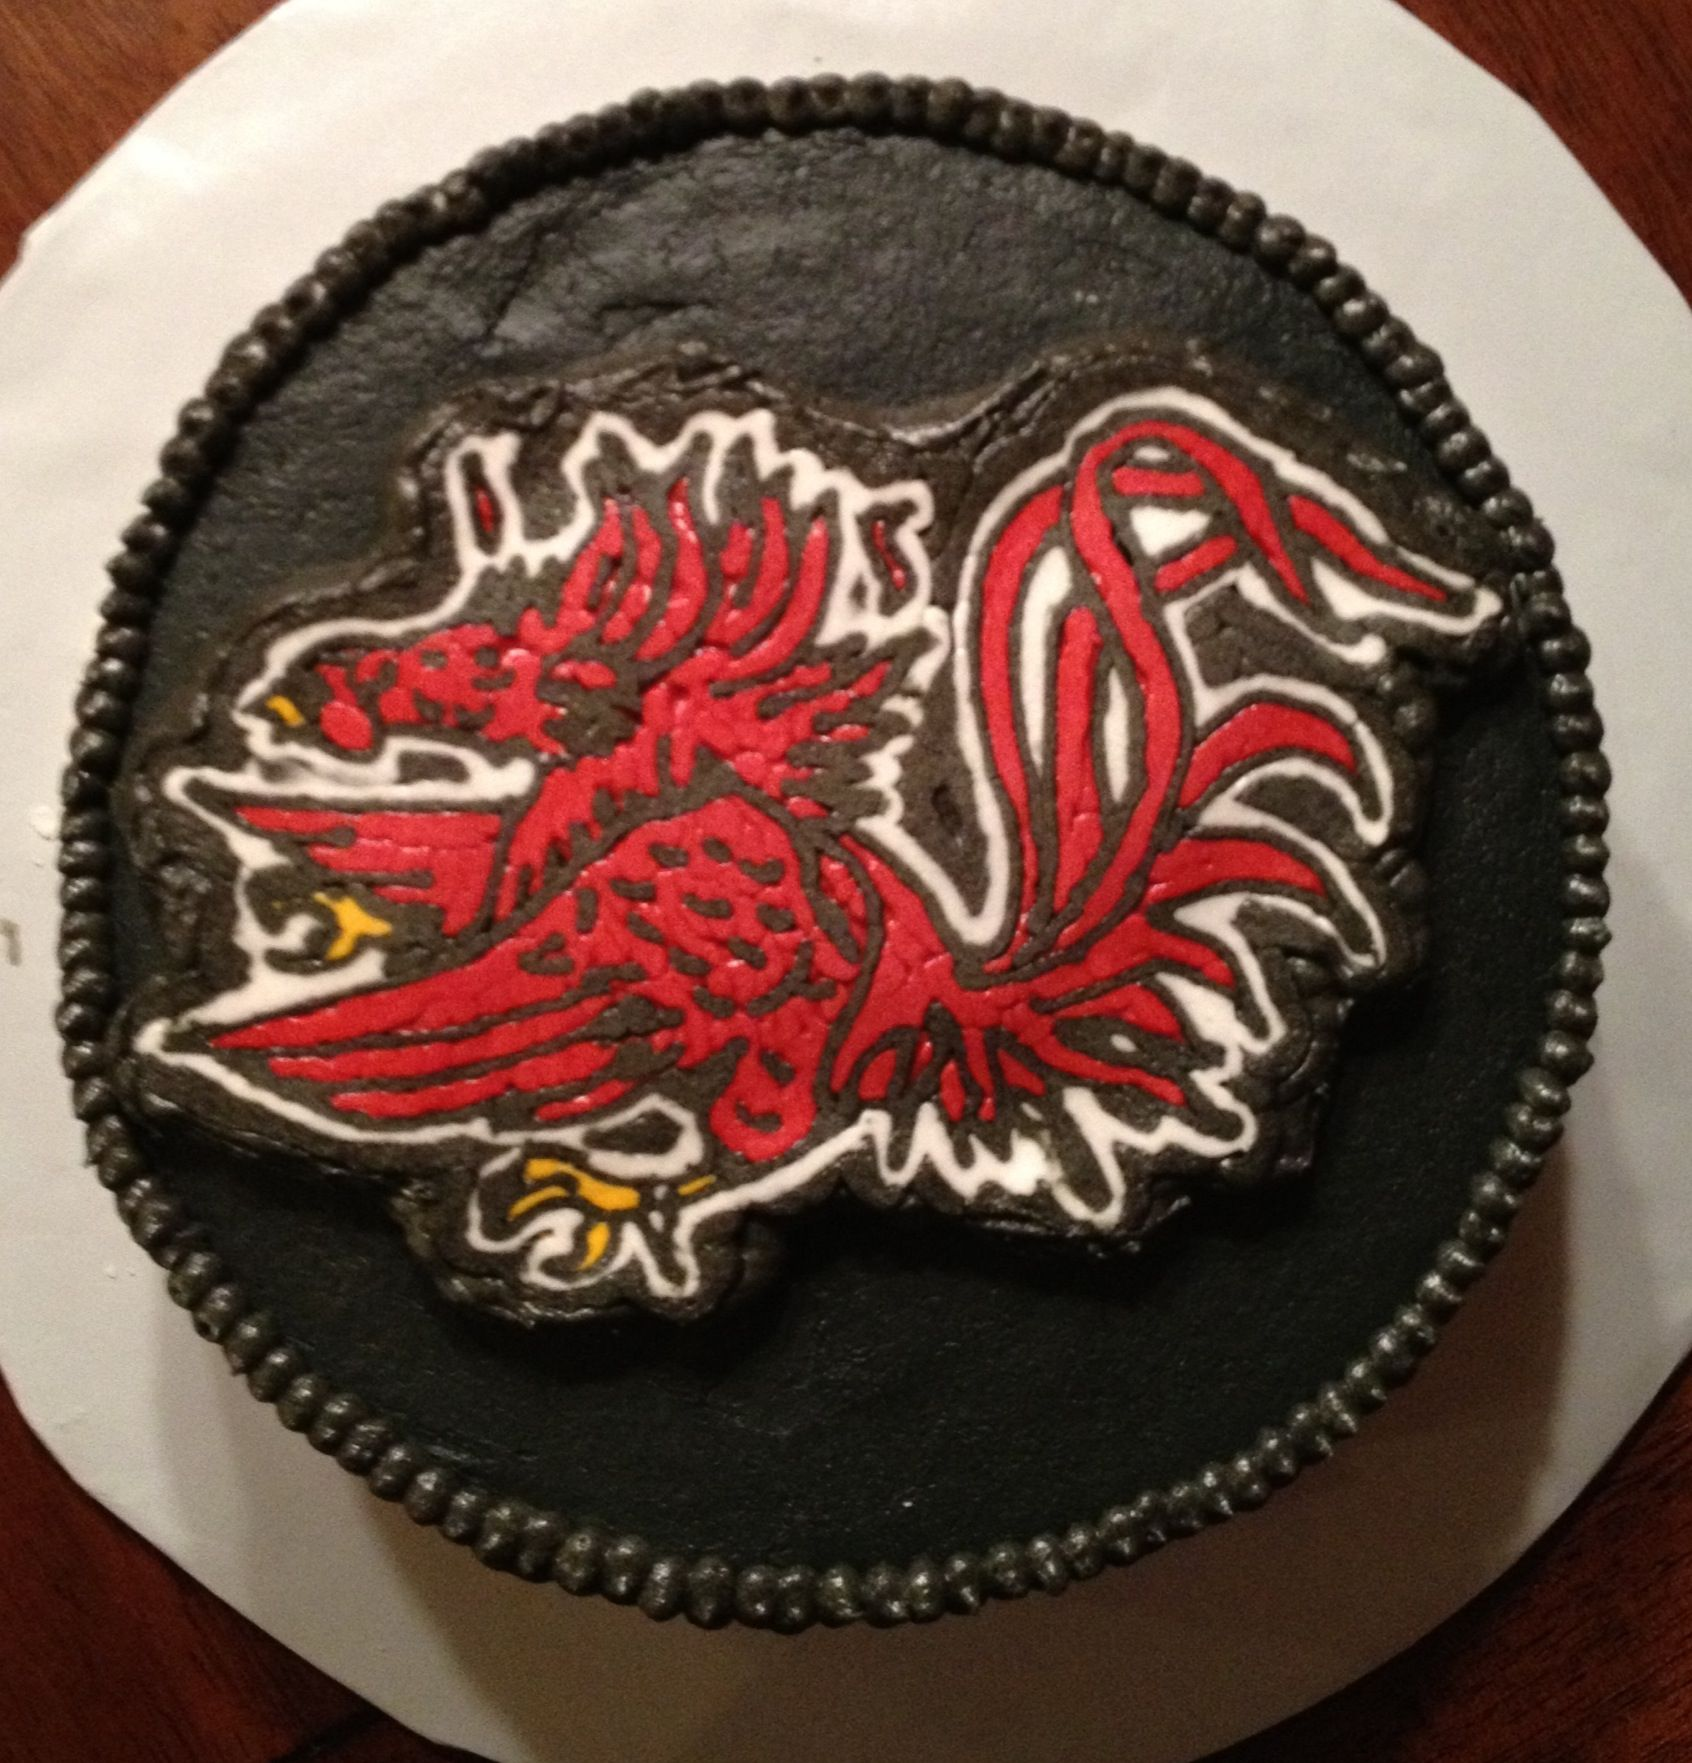 Gamecock Birthday Cake Simply Shane Delicious Treats And